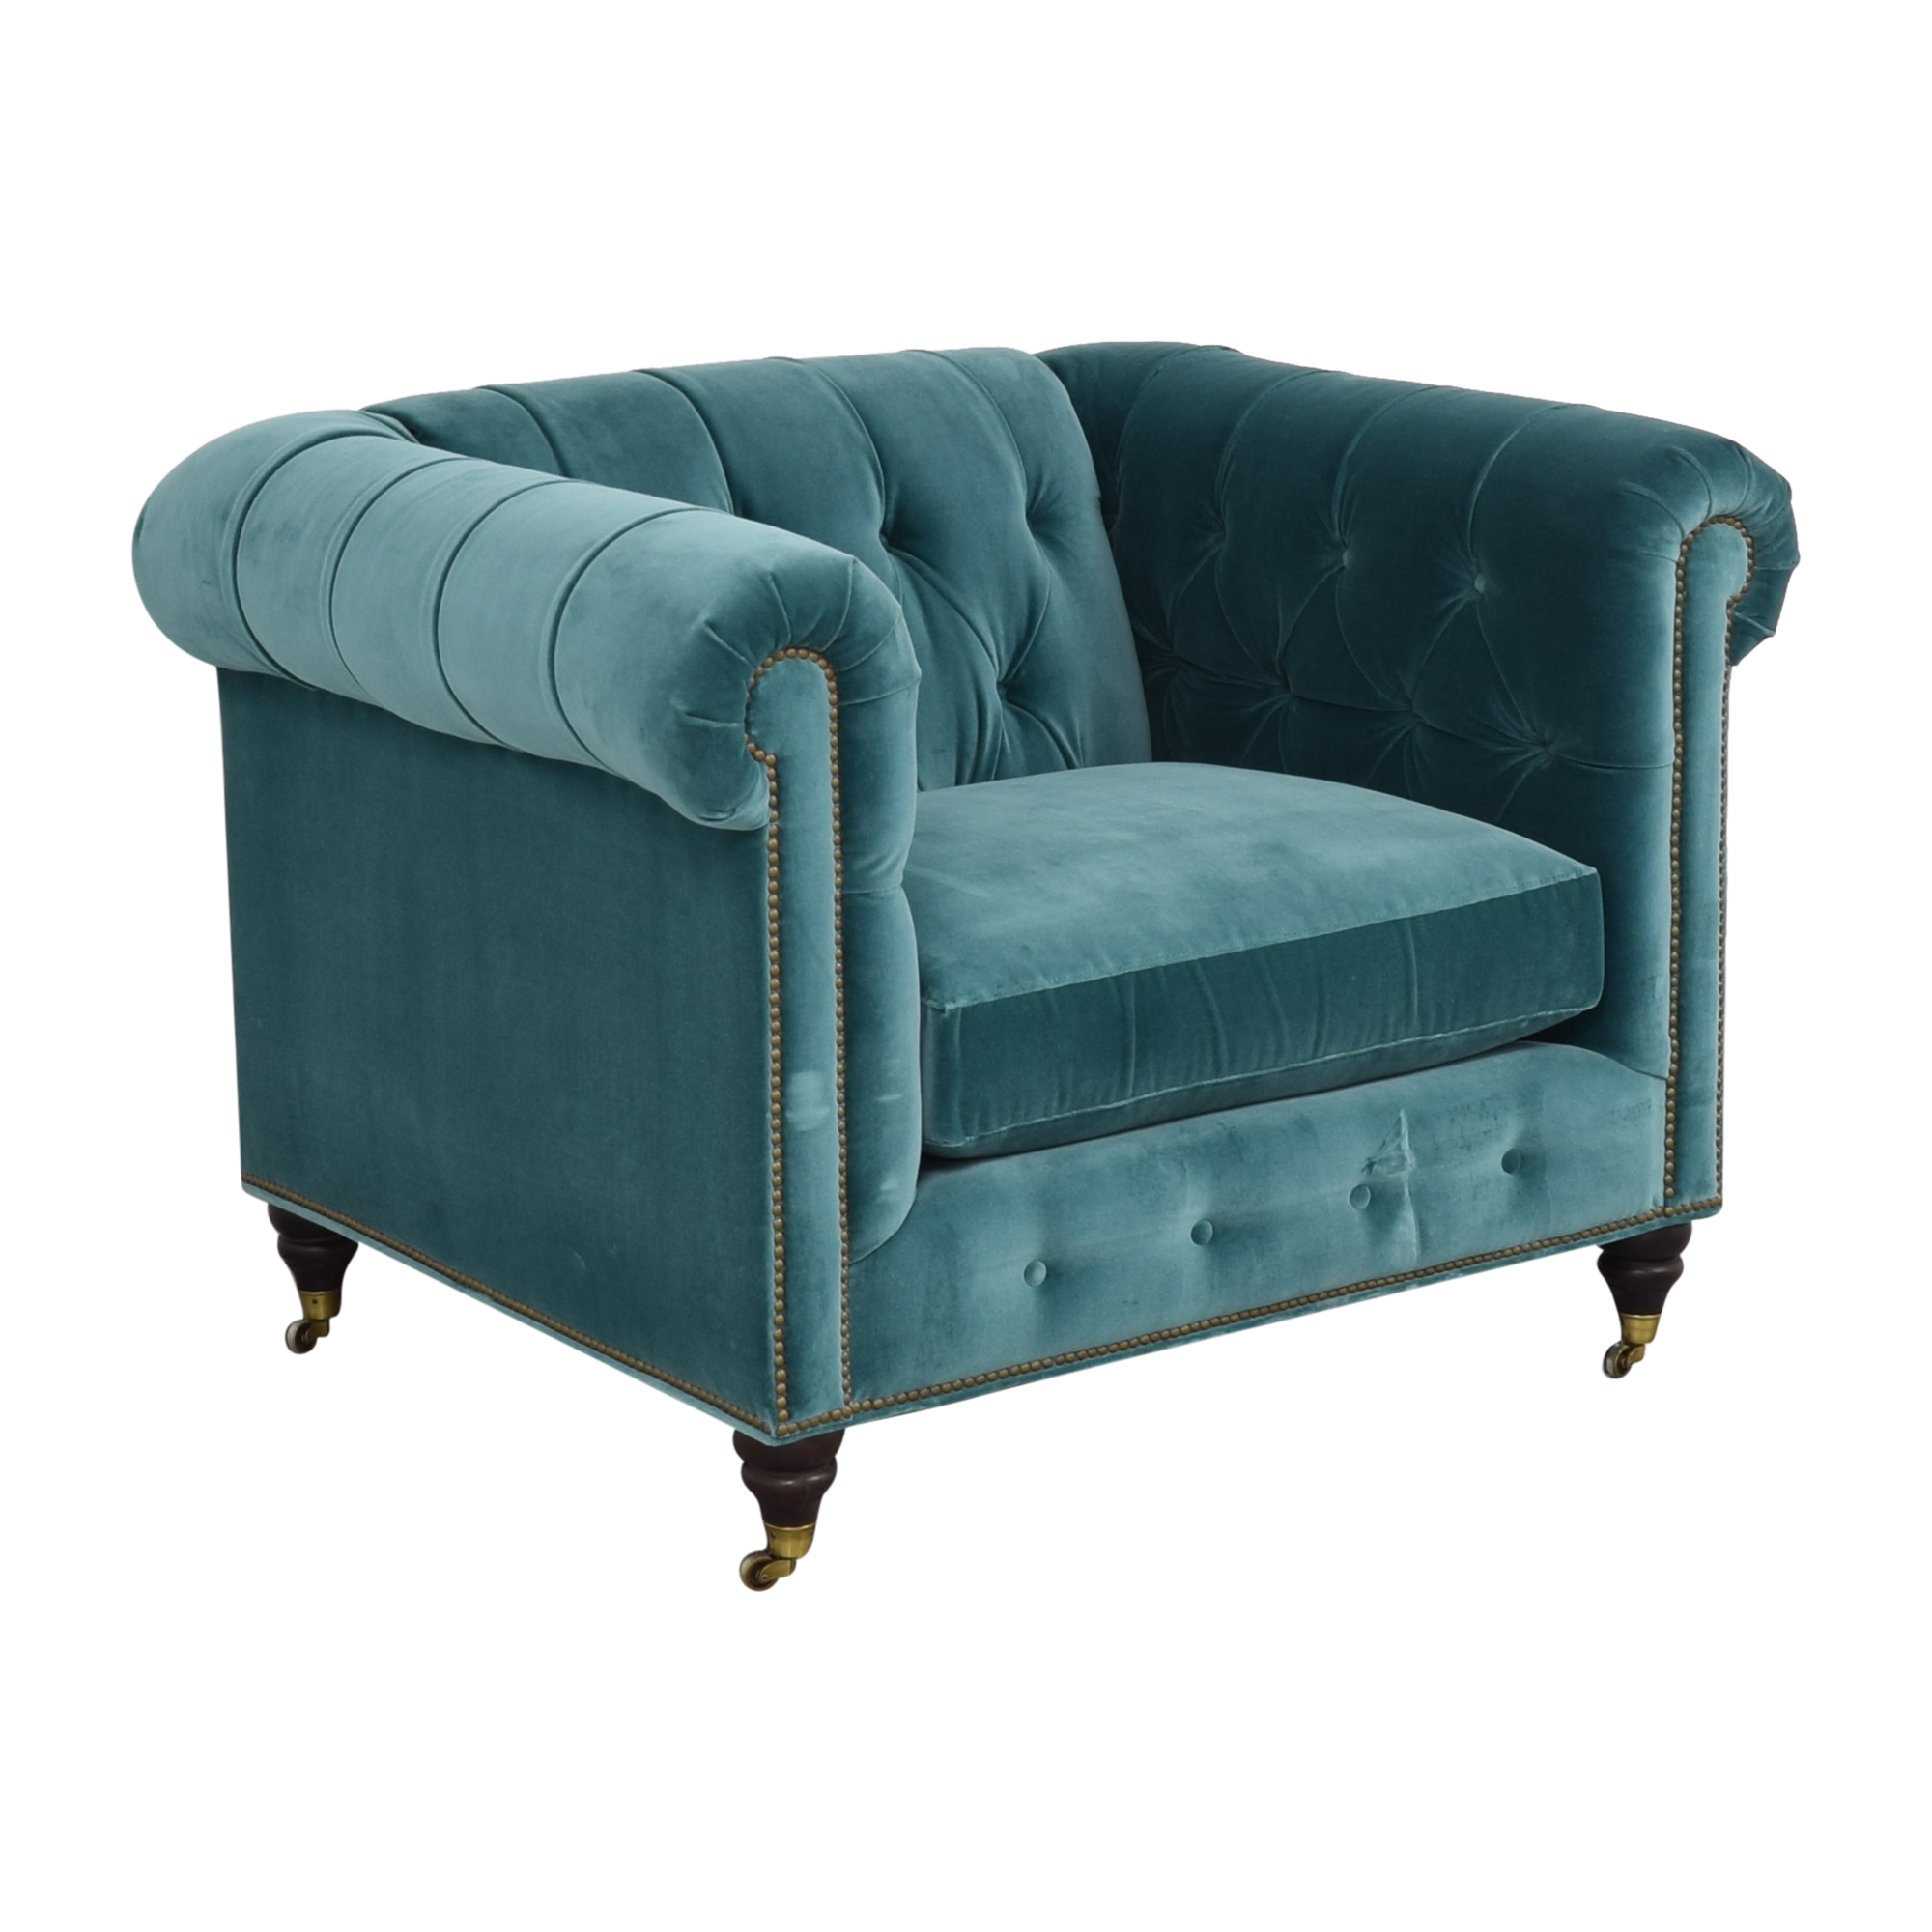 Anthropologie Anthropologie Lyre Chesterfield Chair second hand